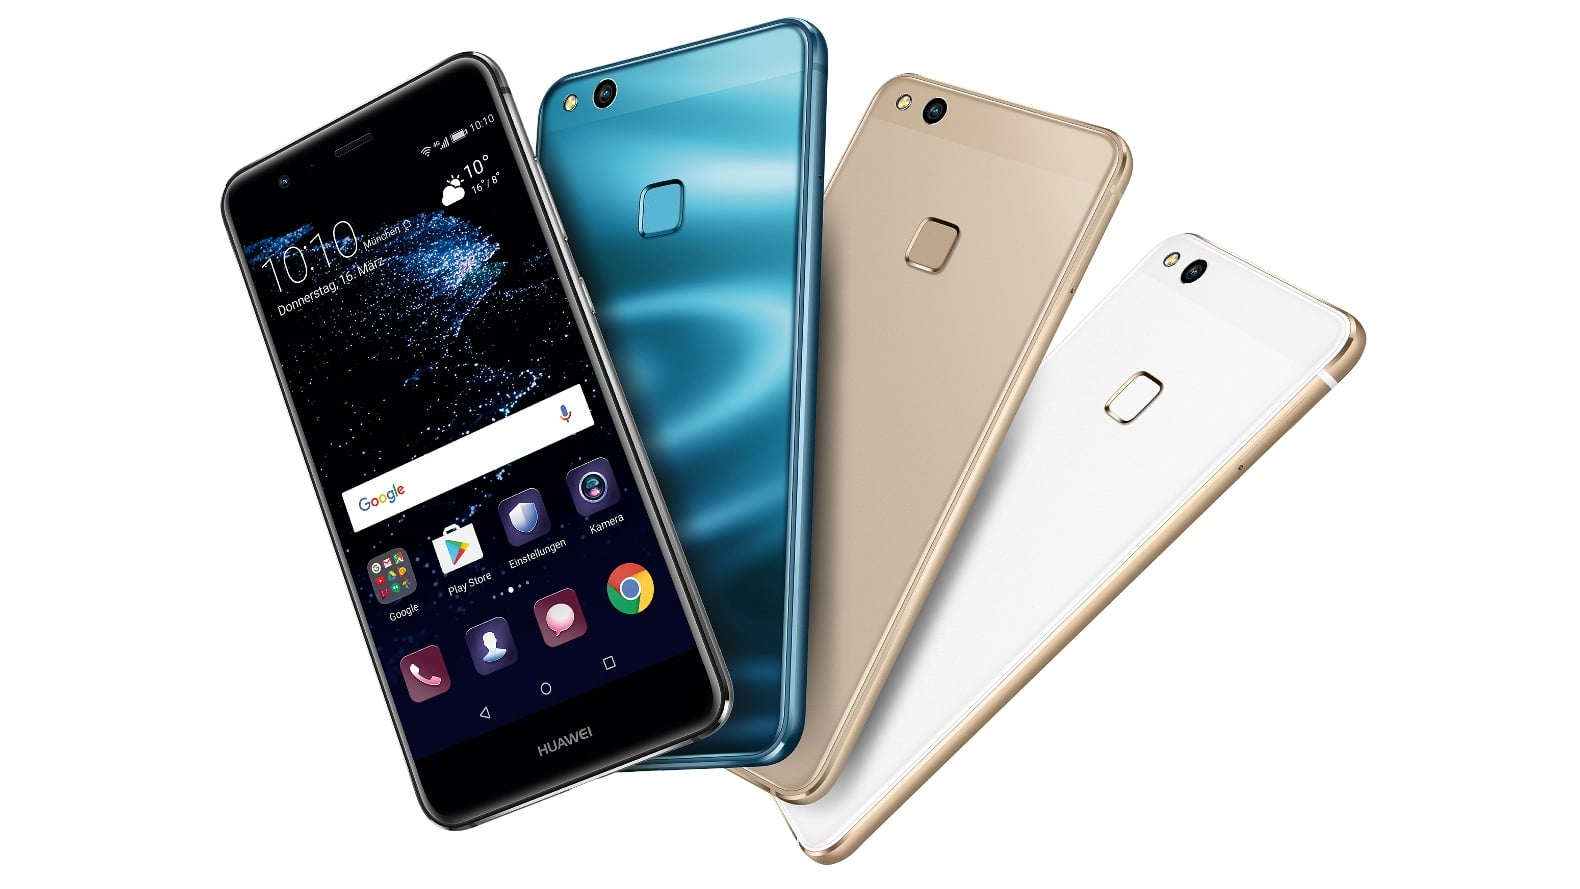 Huawei, the leading telecommunications company has yet again changed the game with the launch of its latest device – Huawei P10 Lite in Pakistan.